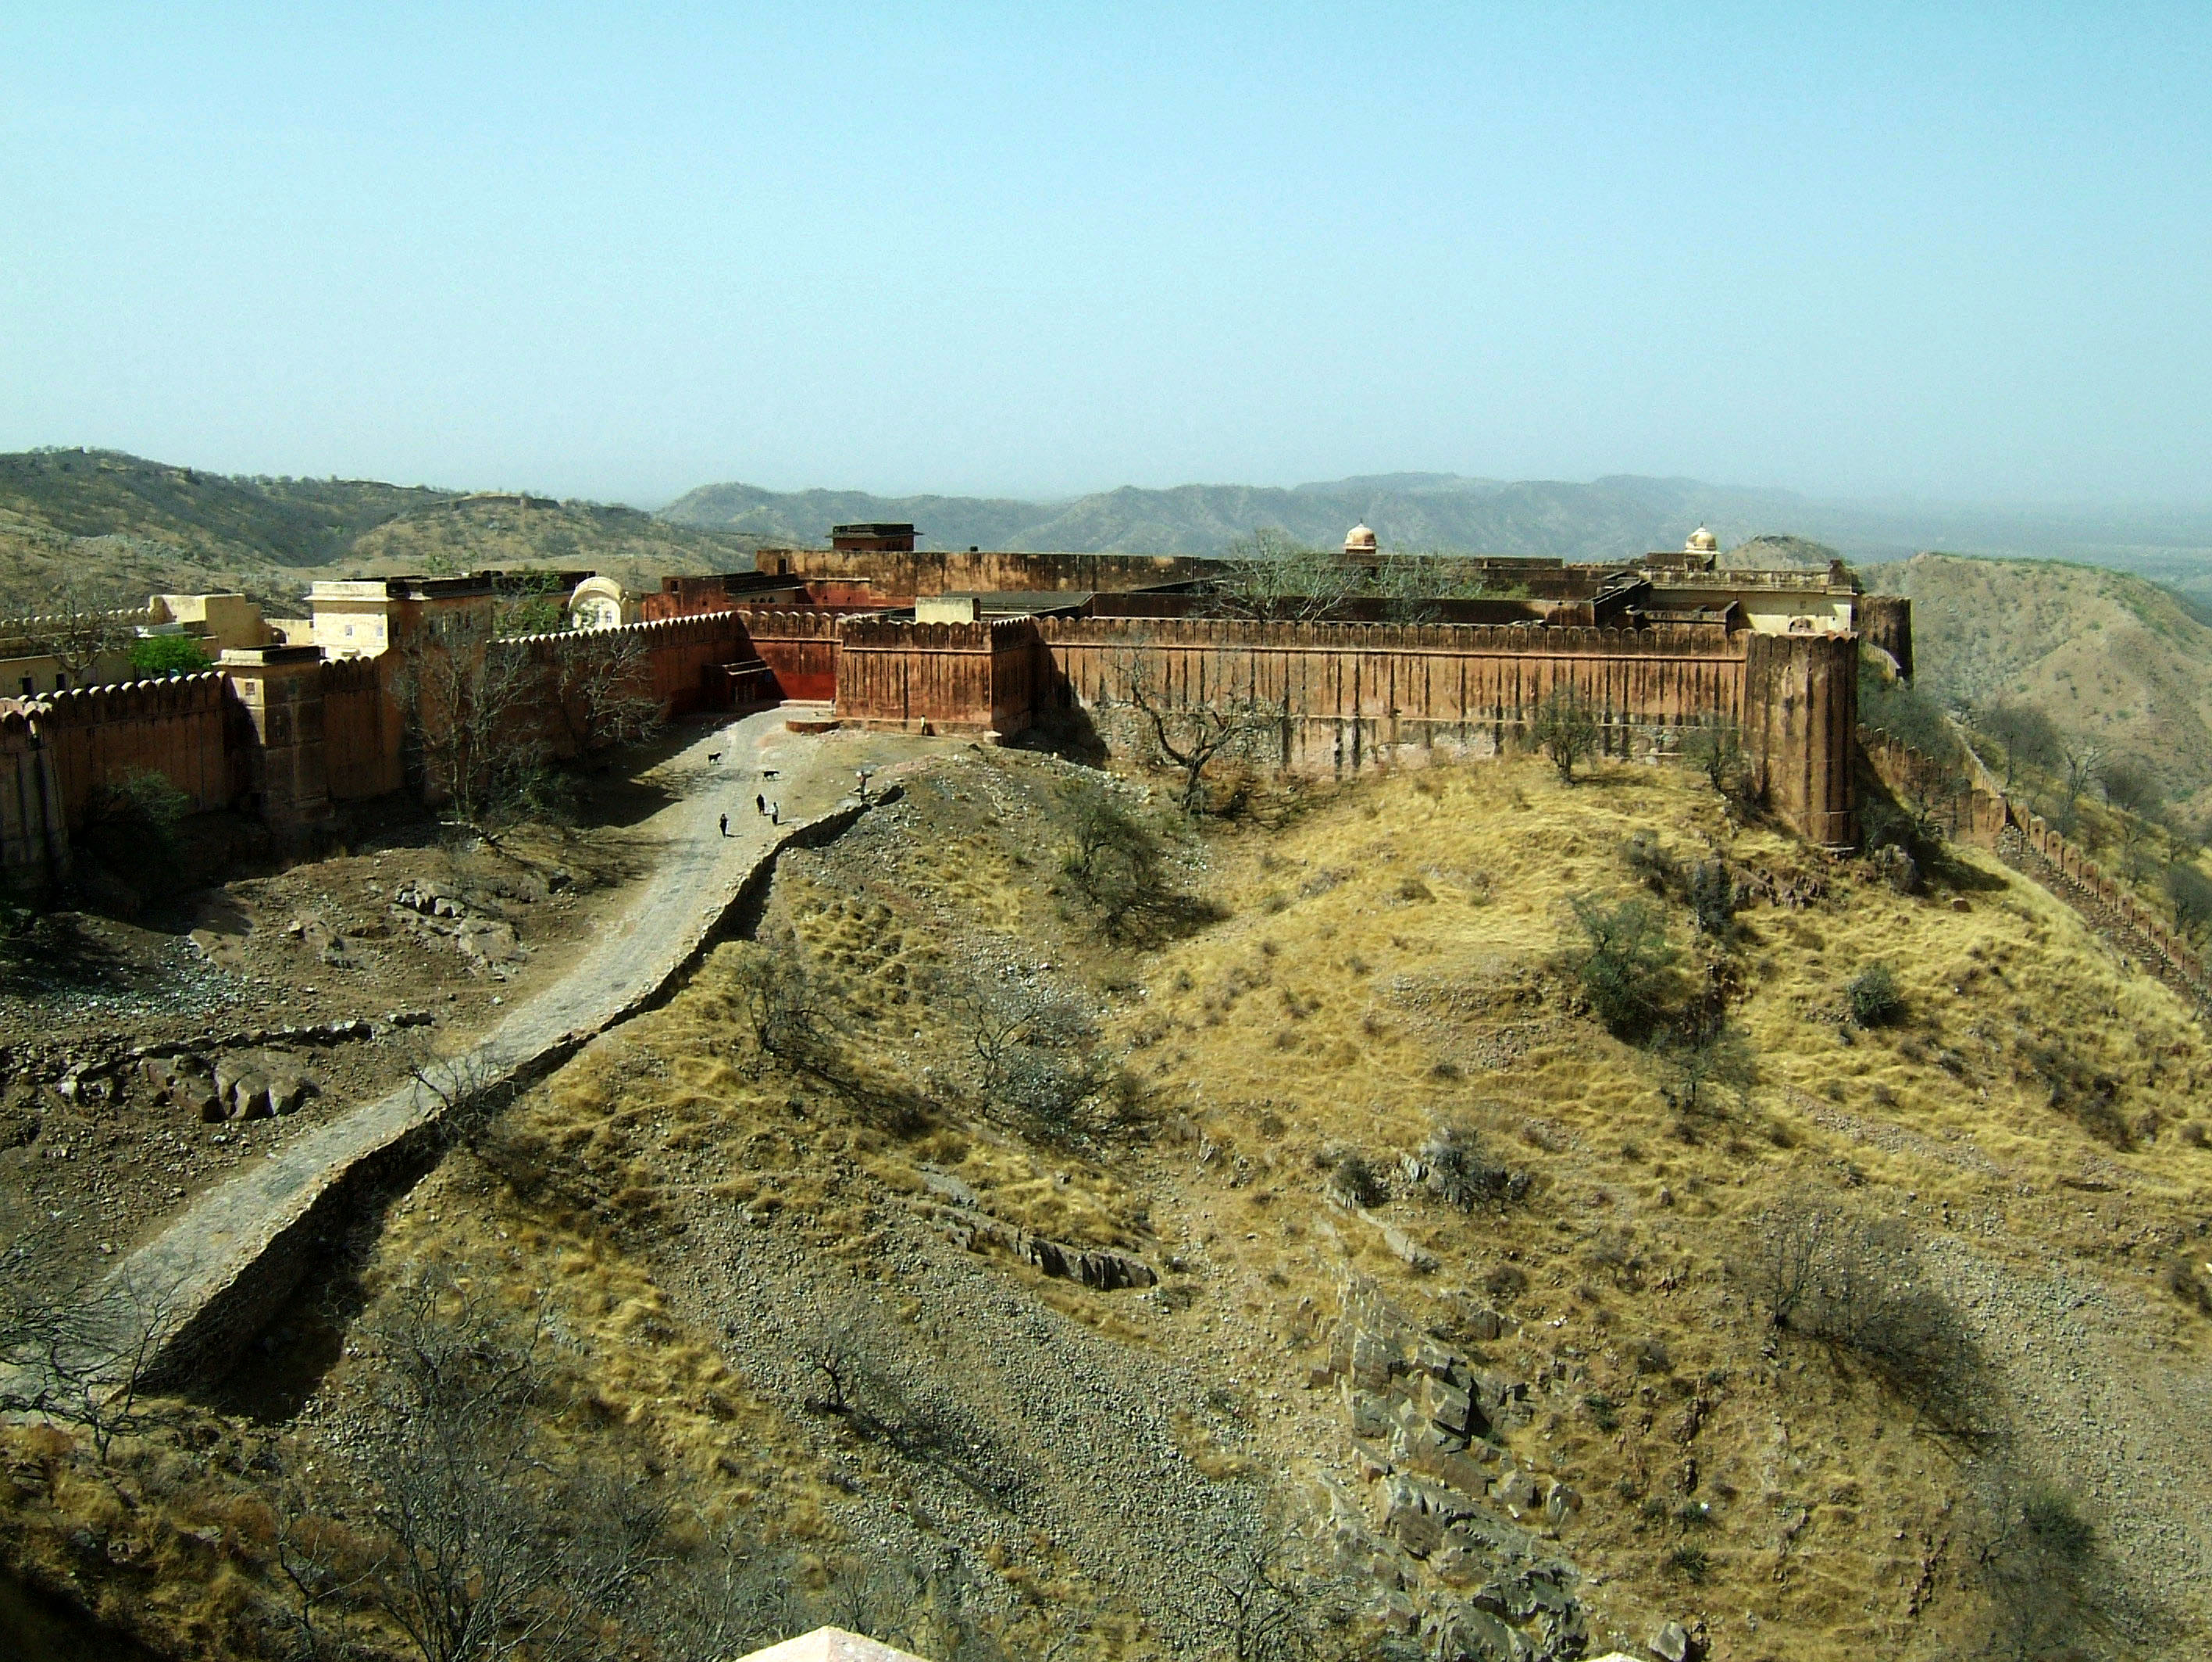 File:Rajasthan-Jaipur-Jaigarh-Fort-perimeter-walls-Apr ...